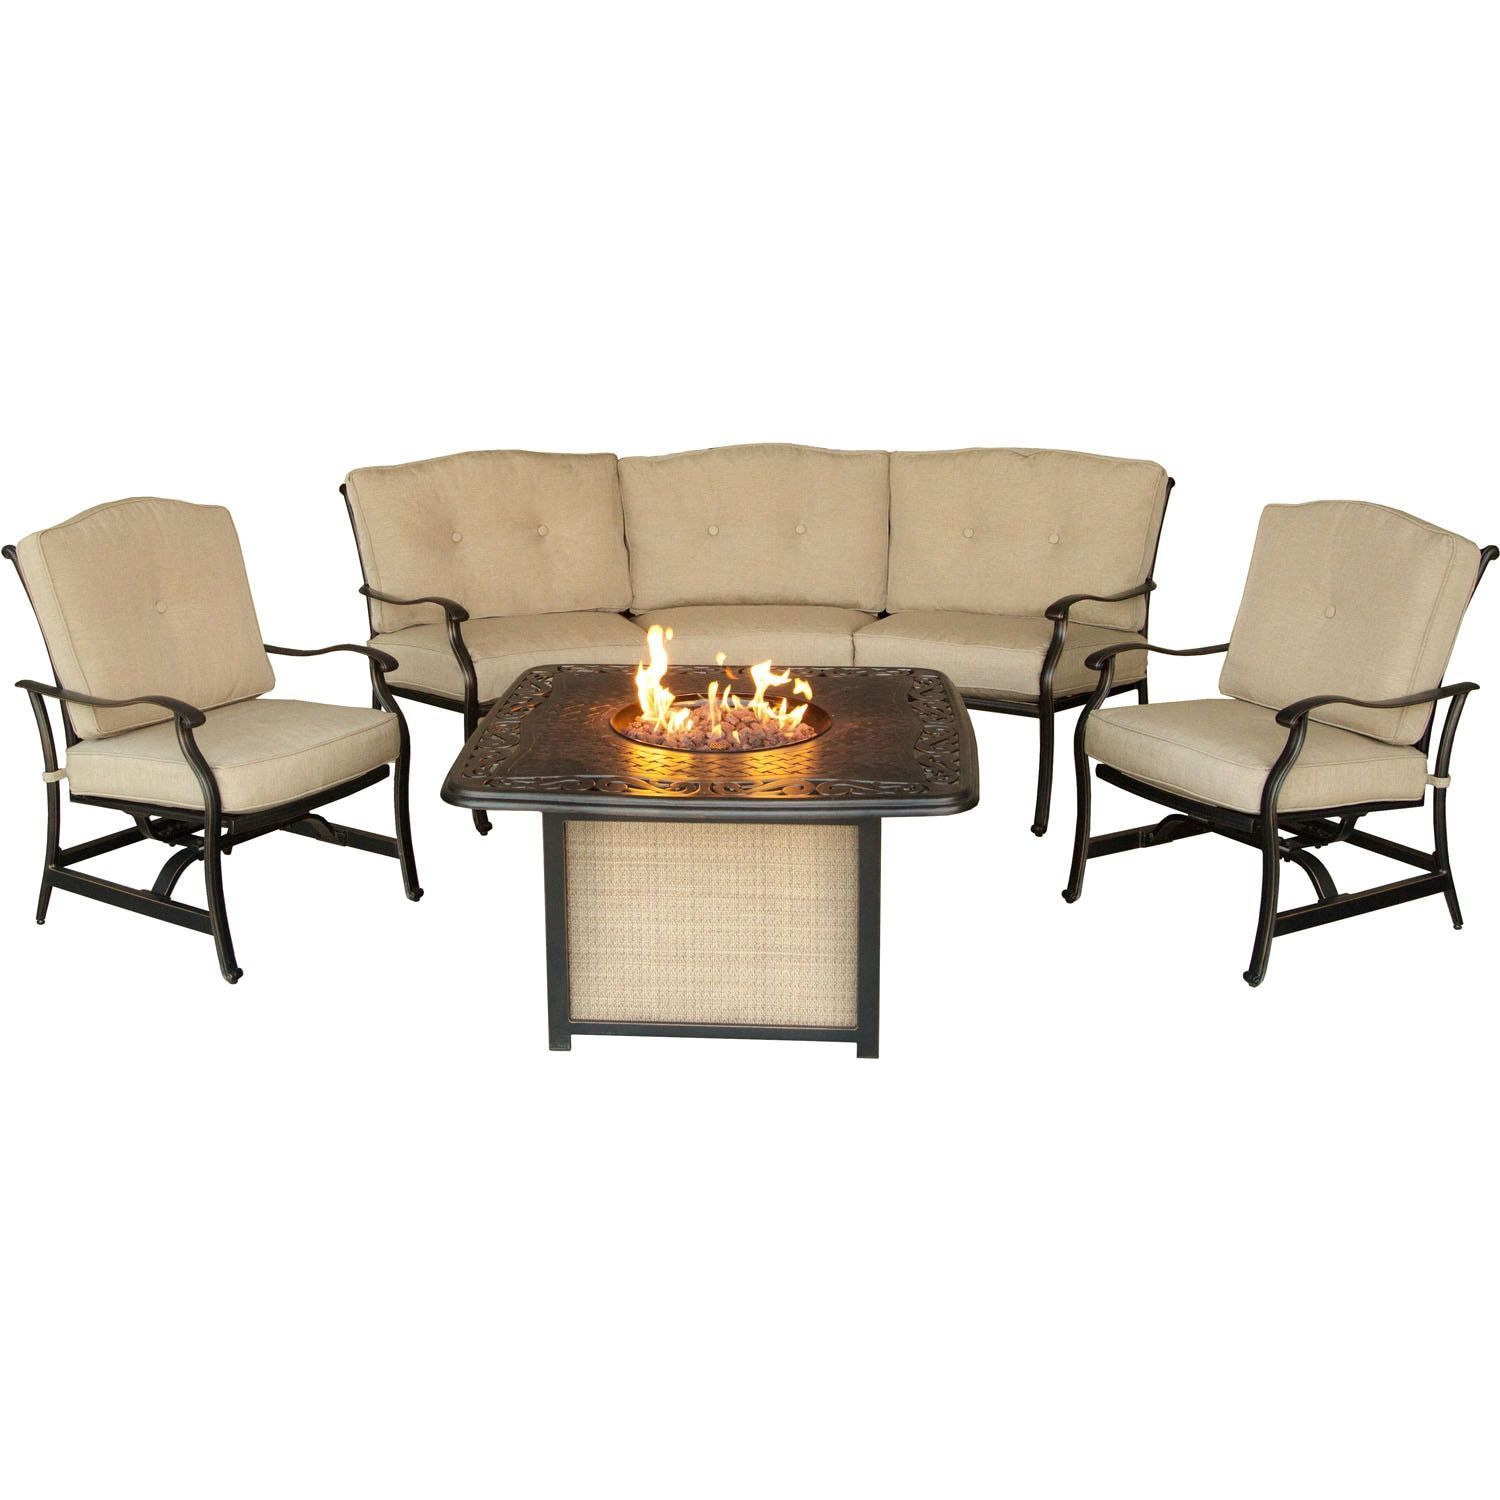 hanover outdoor traditions 4 piece outdoor lounge set with cast top